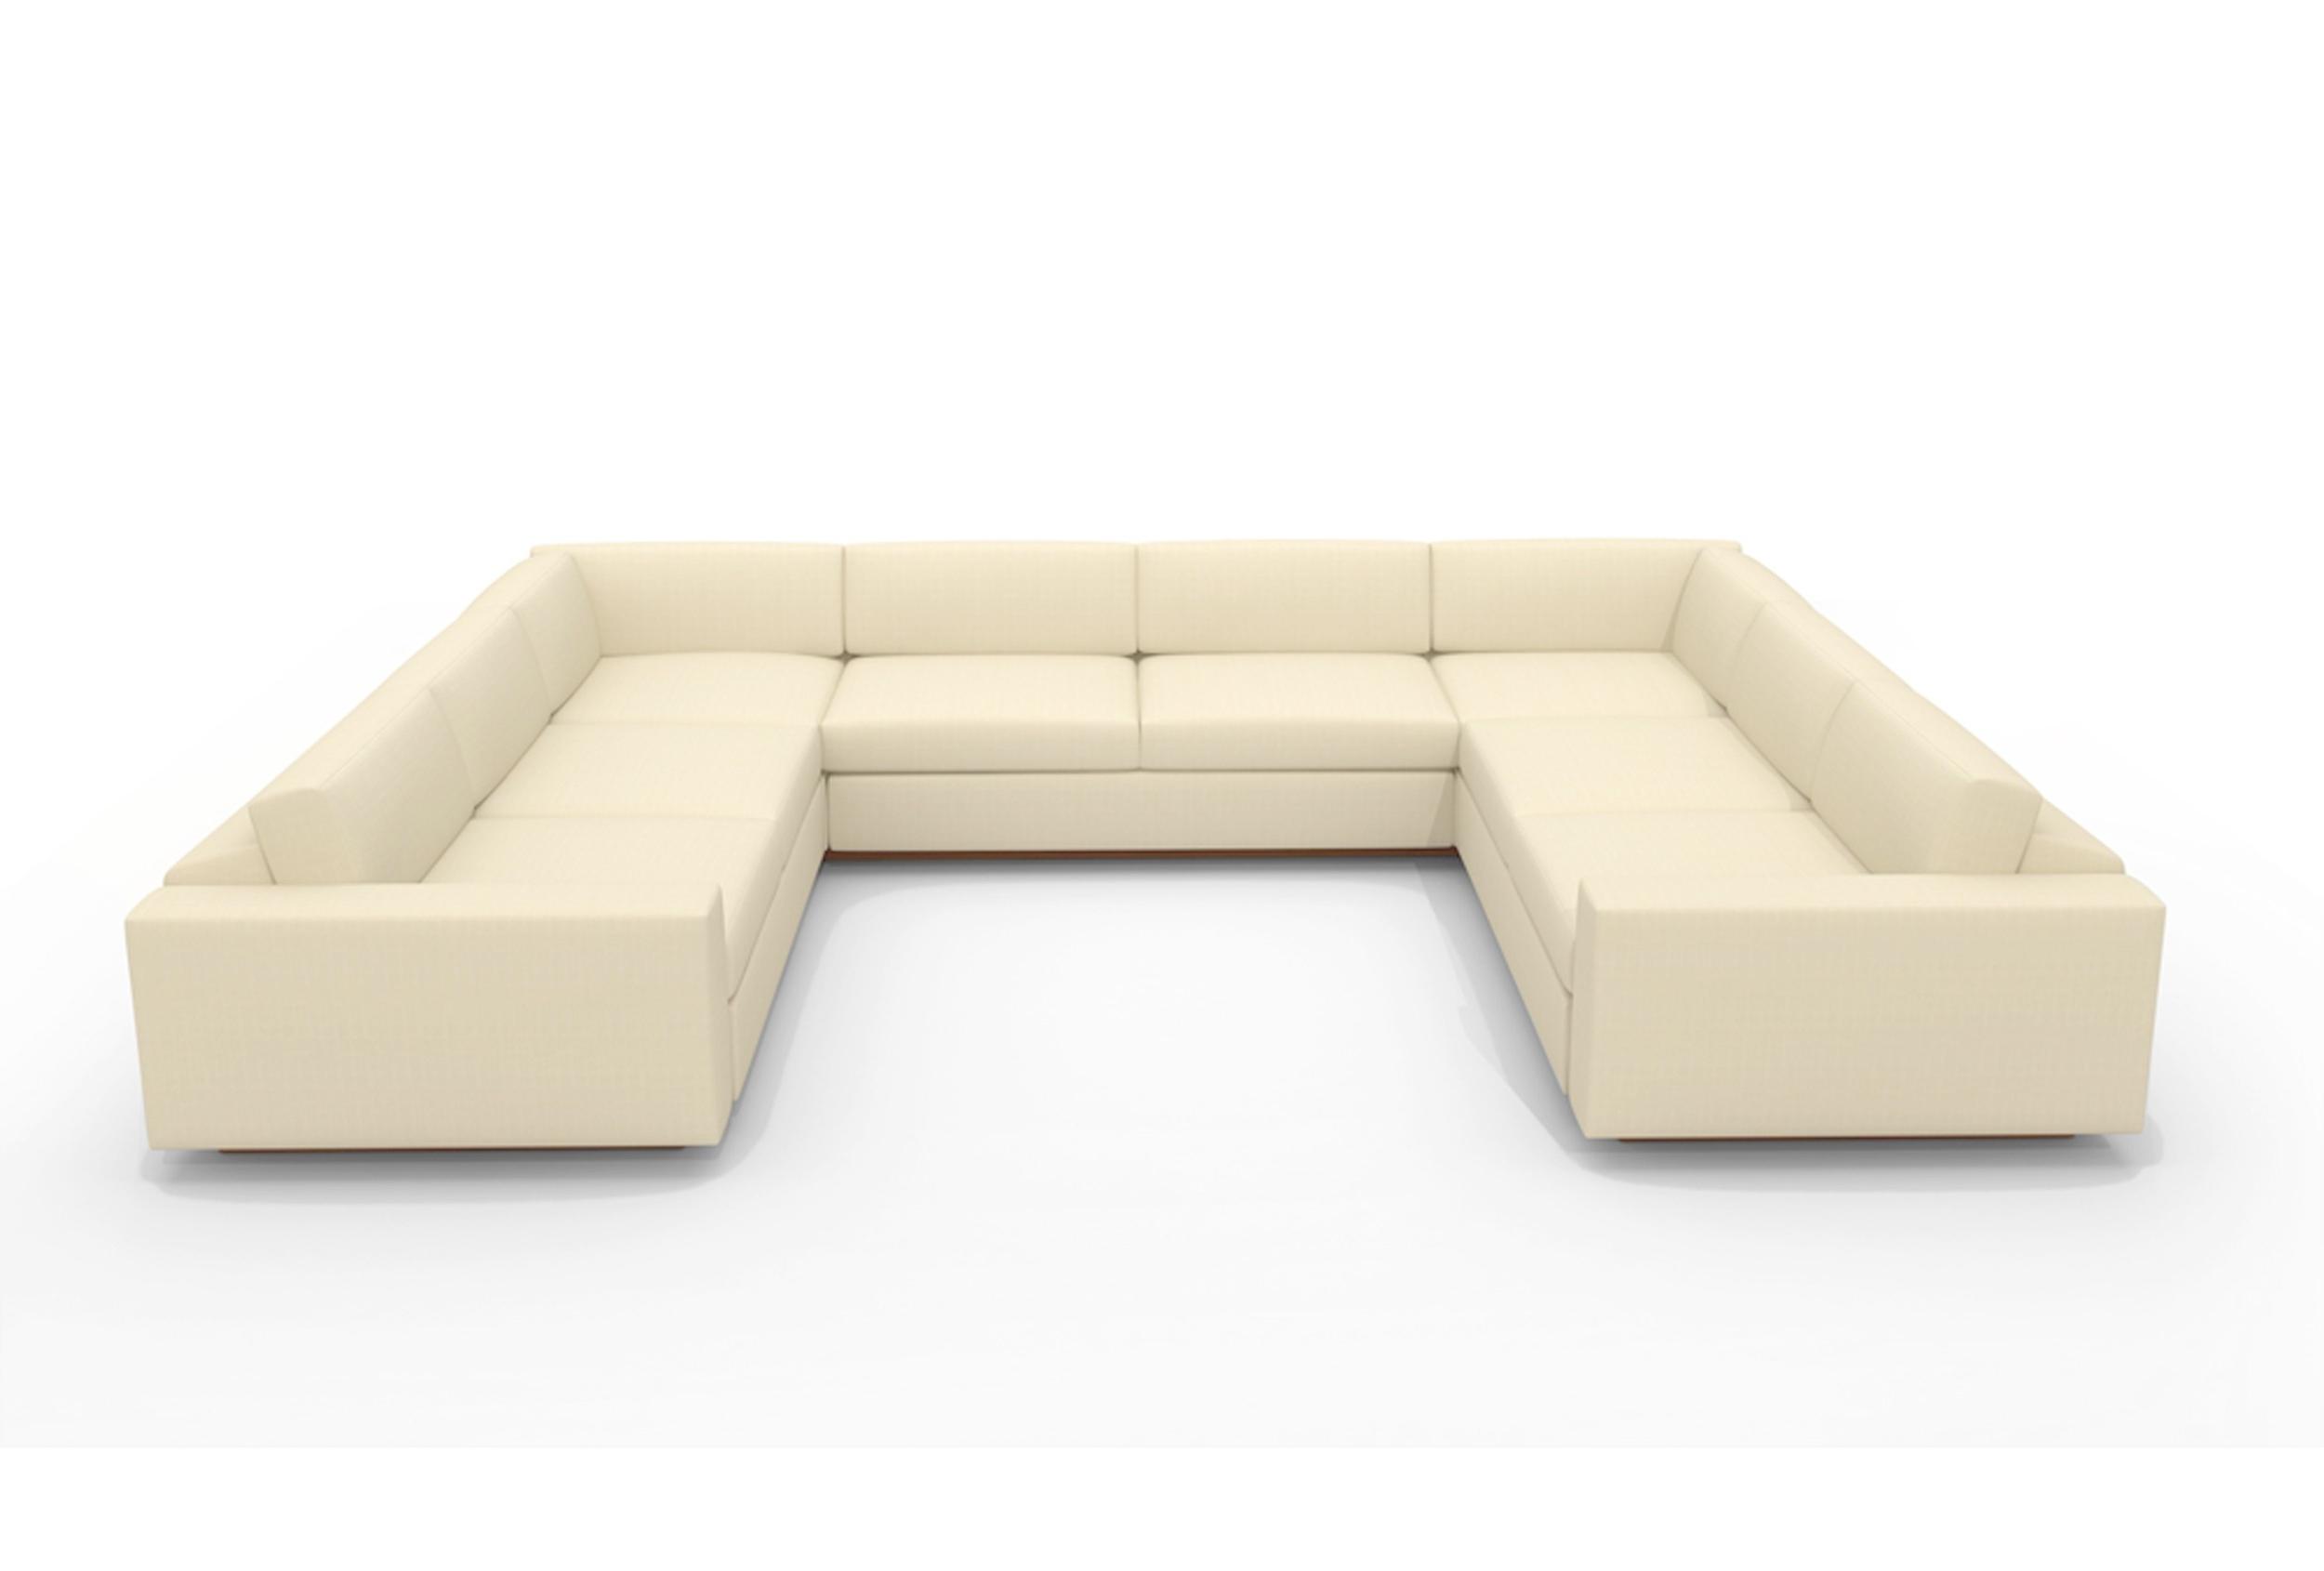 U Shaped White Leather Sectional Sofa With Back And Arm Of With Regard To Fashionable Modern U Shaped Sectional Sofas (View 15 of 20)